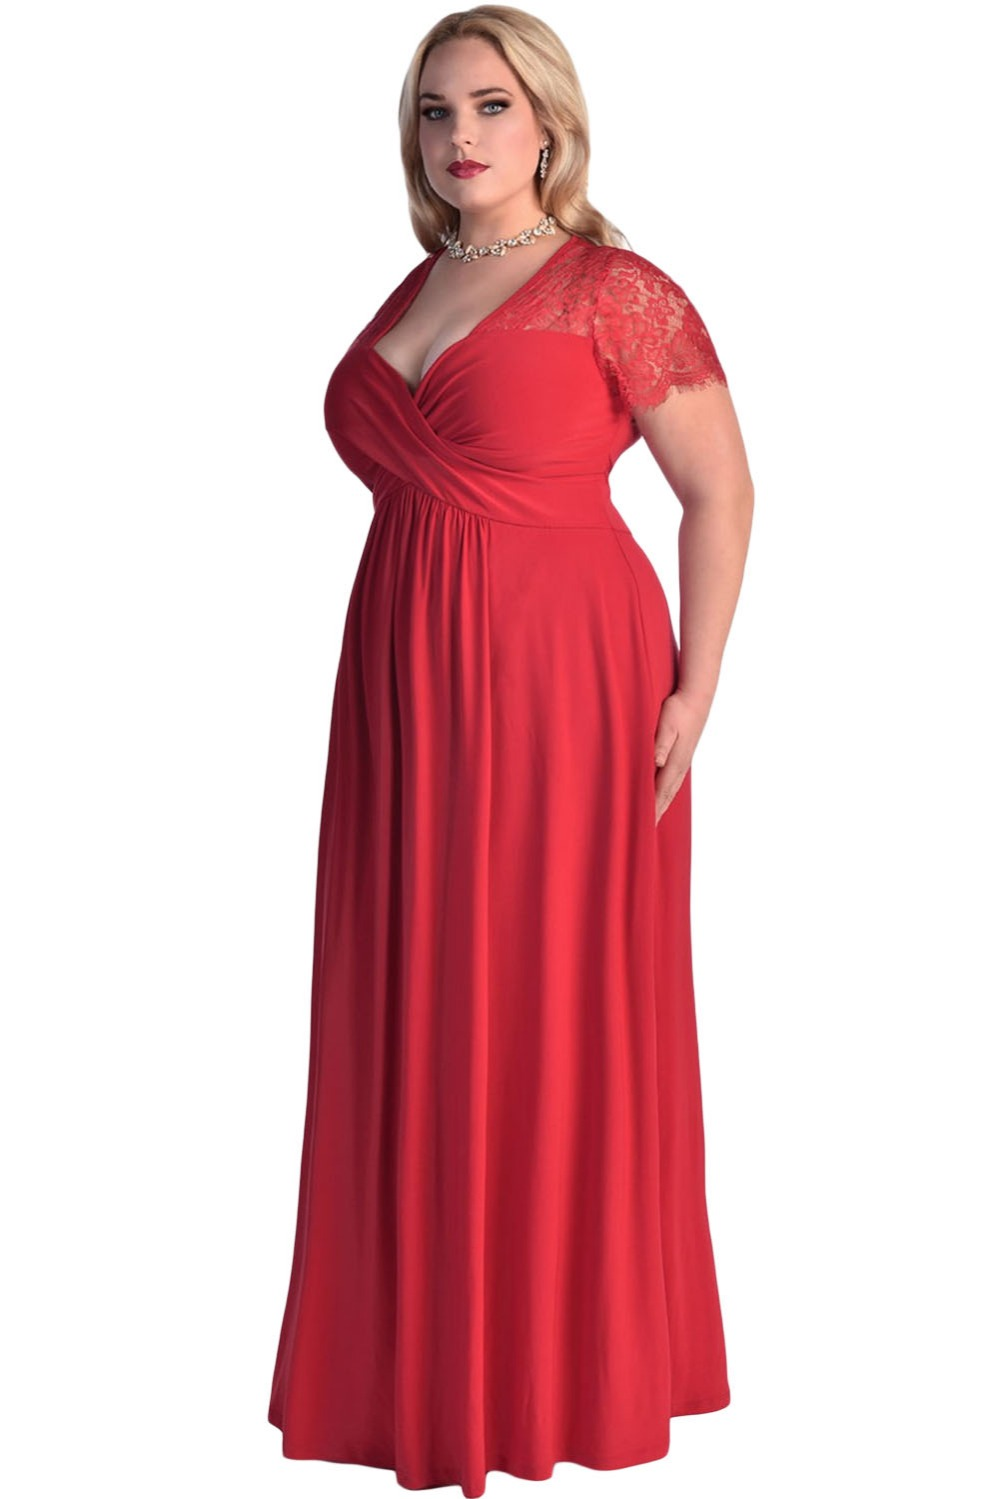 cf66ae2971 US $23.07 26% OFF|Dear lover Party Longo Vestidos Big Women Black Lace Yoke  Ruched Twist High Waist Plus Size Gown Dress with Short Sleeve LC61025-in  ...